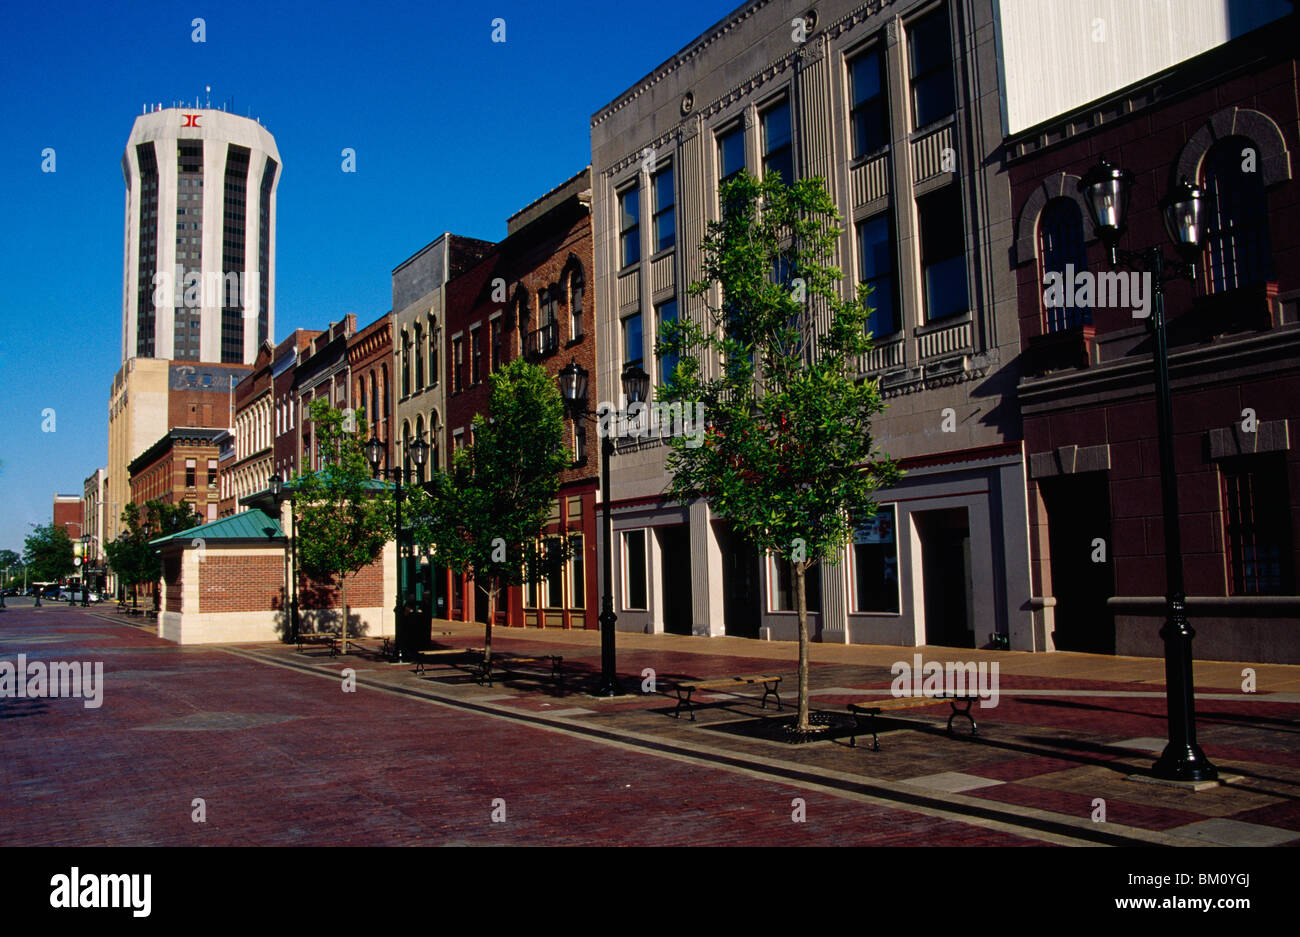 Buildings at a town square, Old State Capitol Plaza, Springfield, Illinois, USA - Stock Image